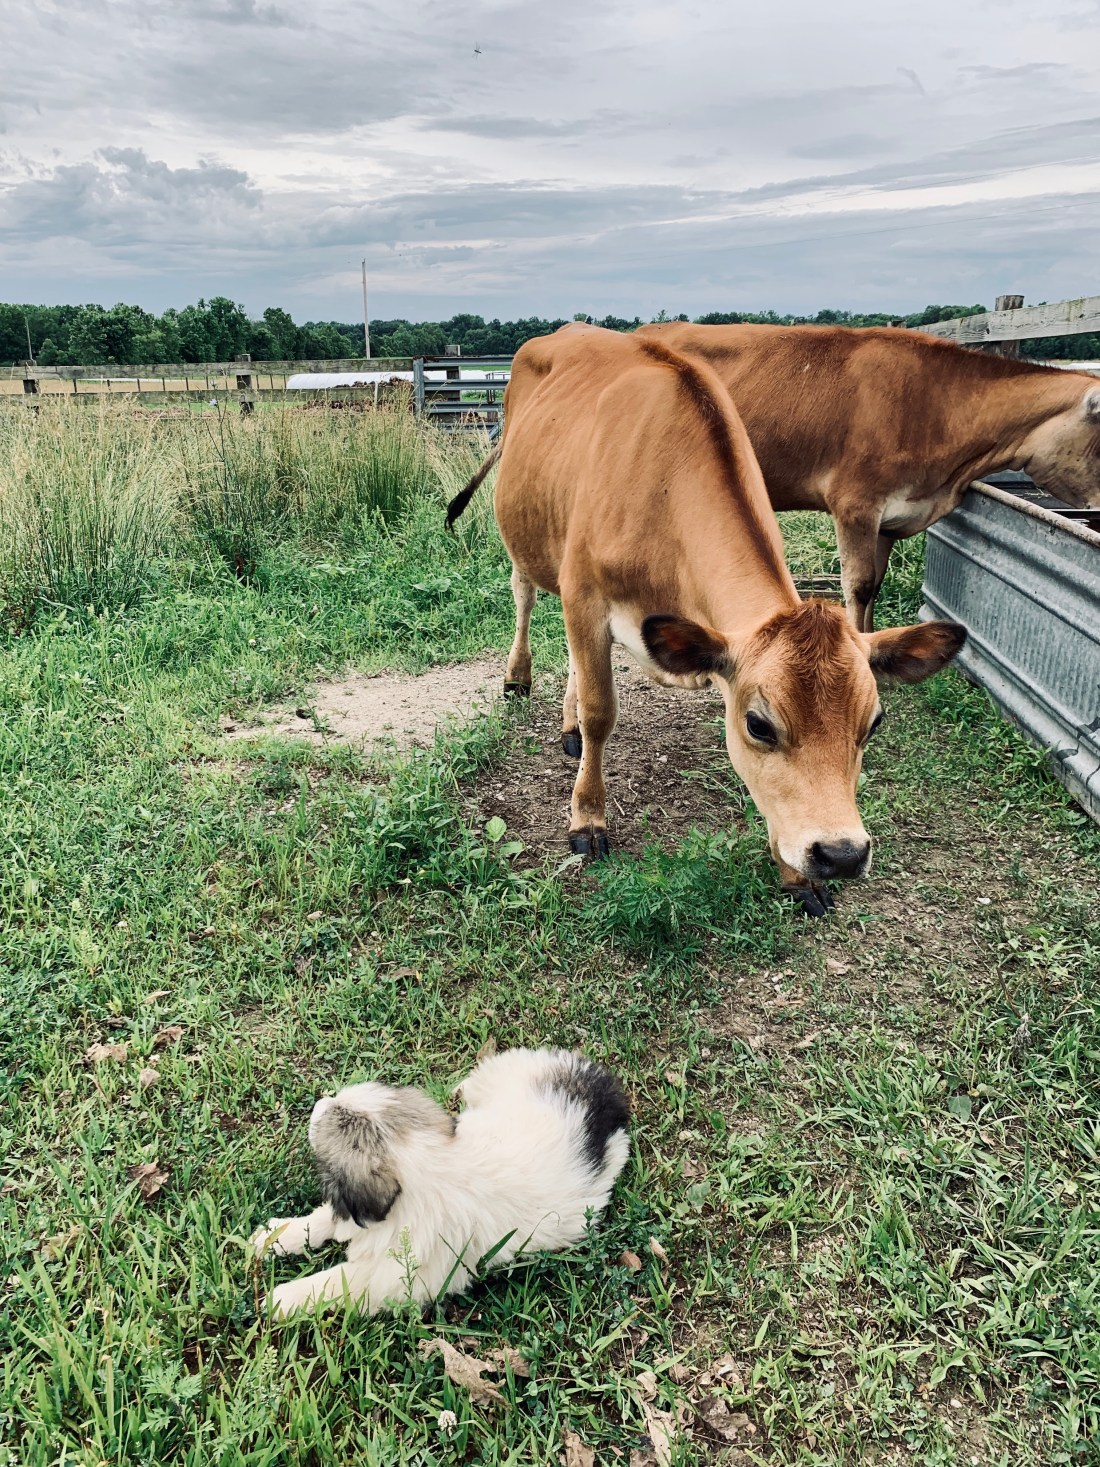 cows and dogs